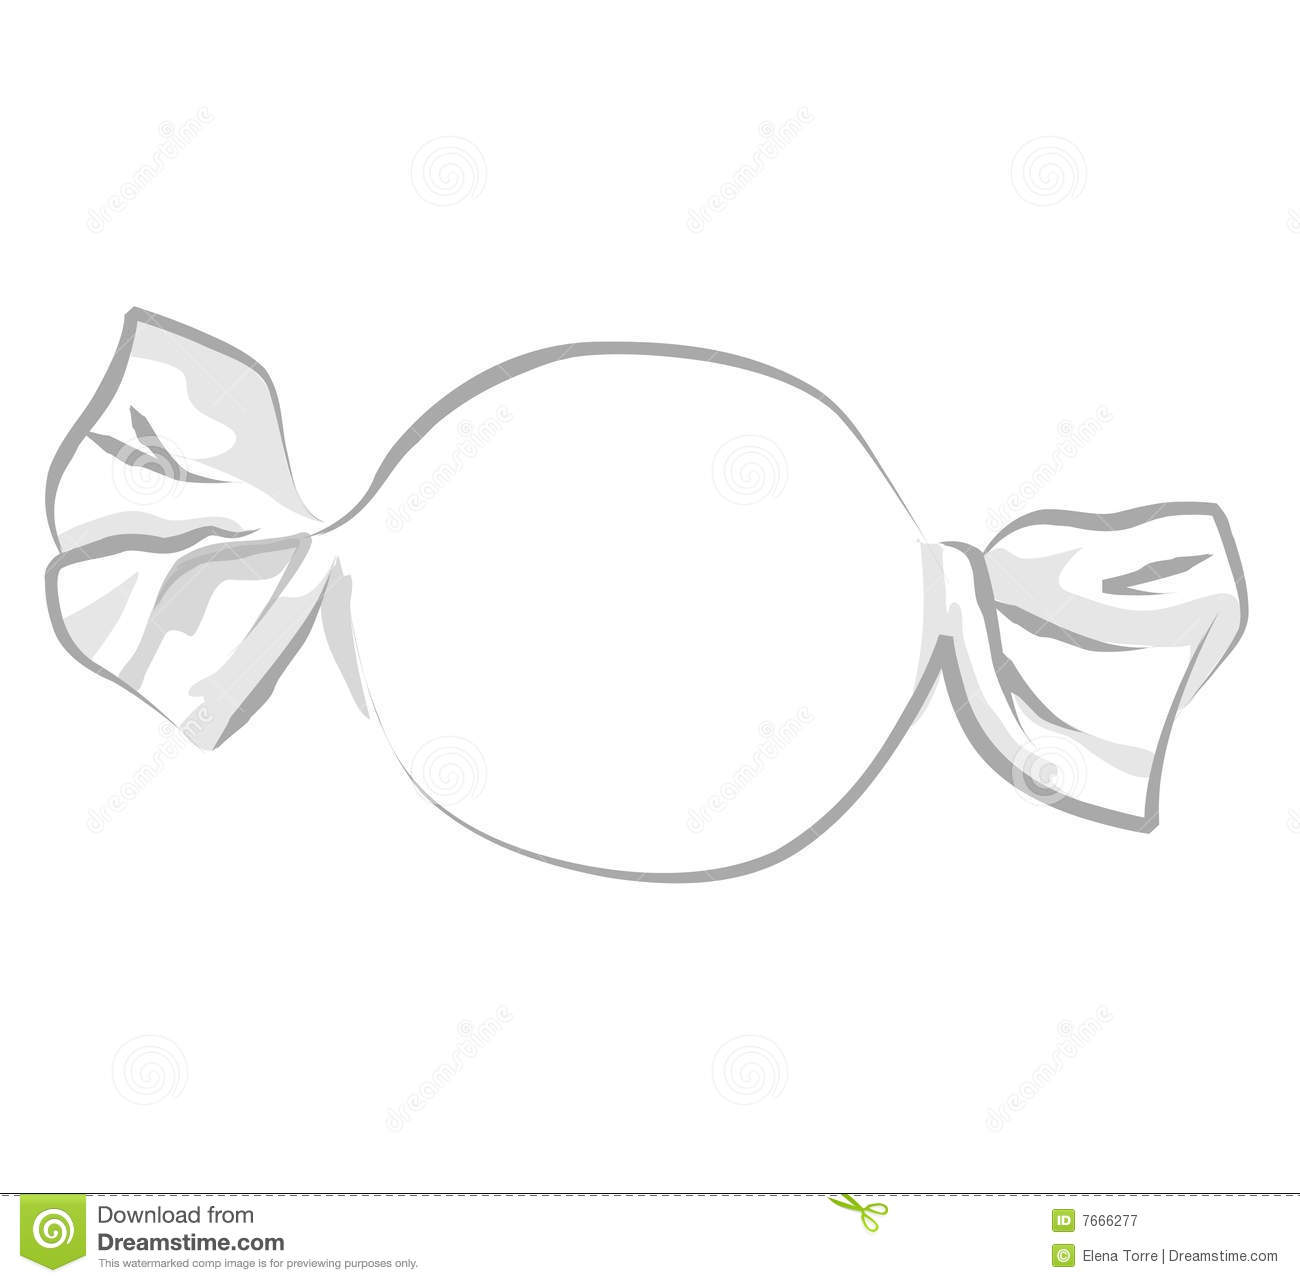 Grass With Flowers furthermore How To Draw A Cupcake further Royalty Free Stock Photography Candy Vector Eps File Image7666277 as well Wrappers Gratis C5epo7B7B additionally Rub Coloriages Fleurs Herbes. on cupcake wrapper template